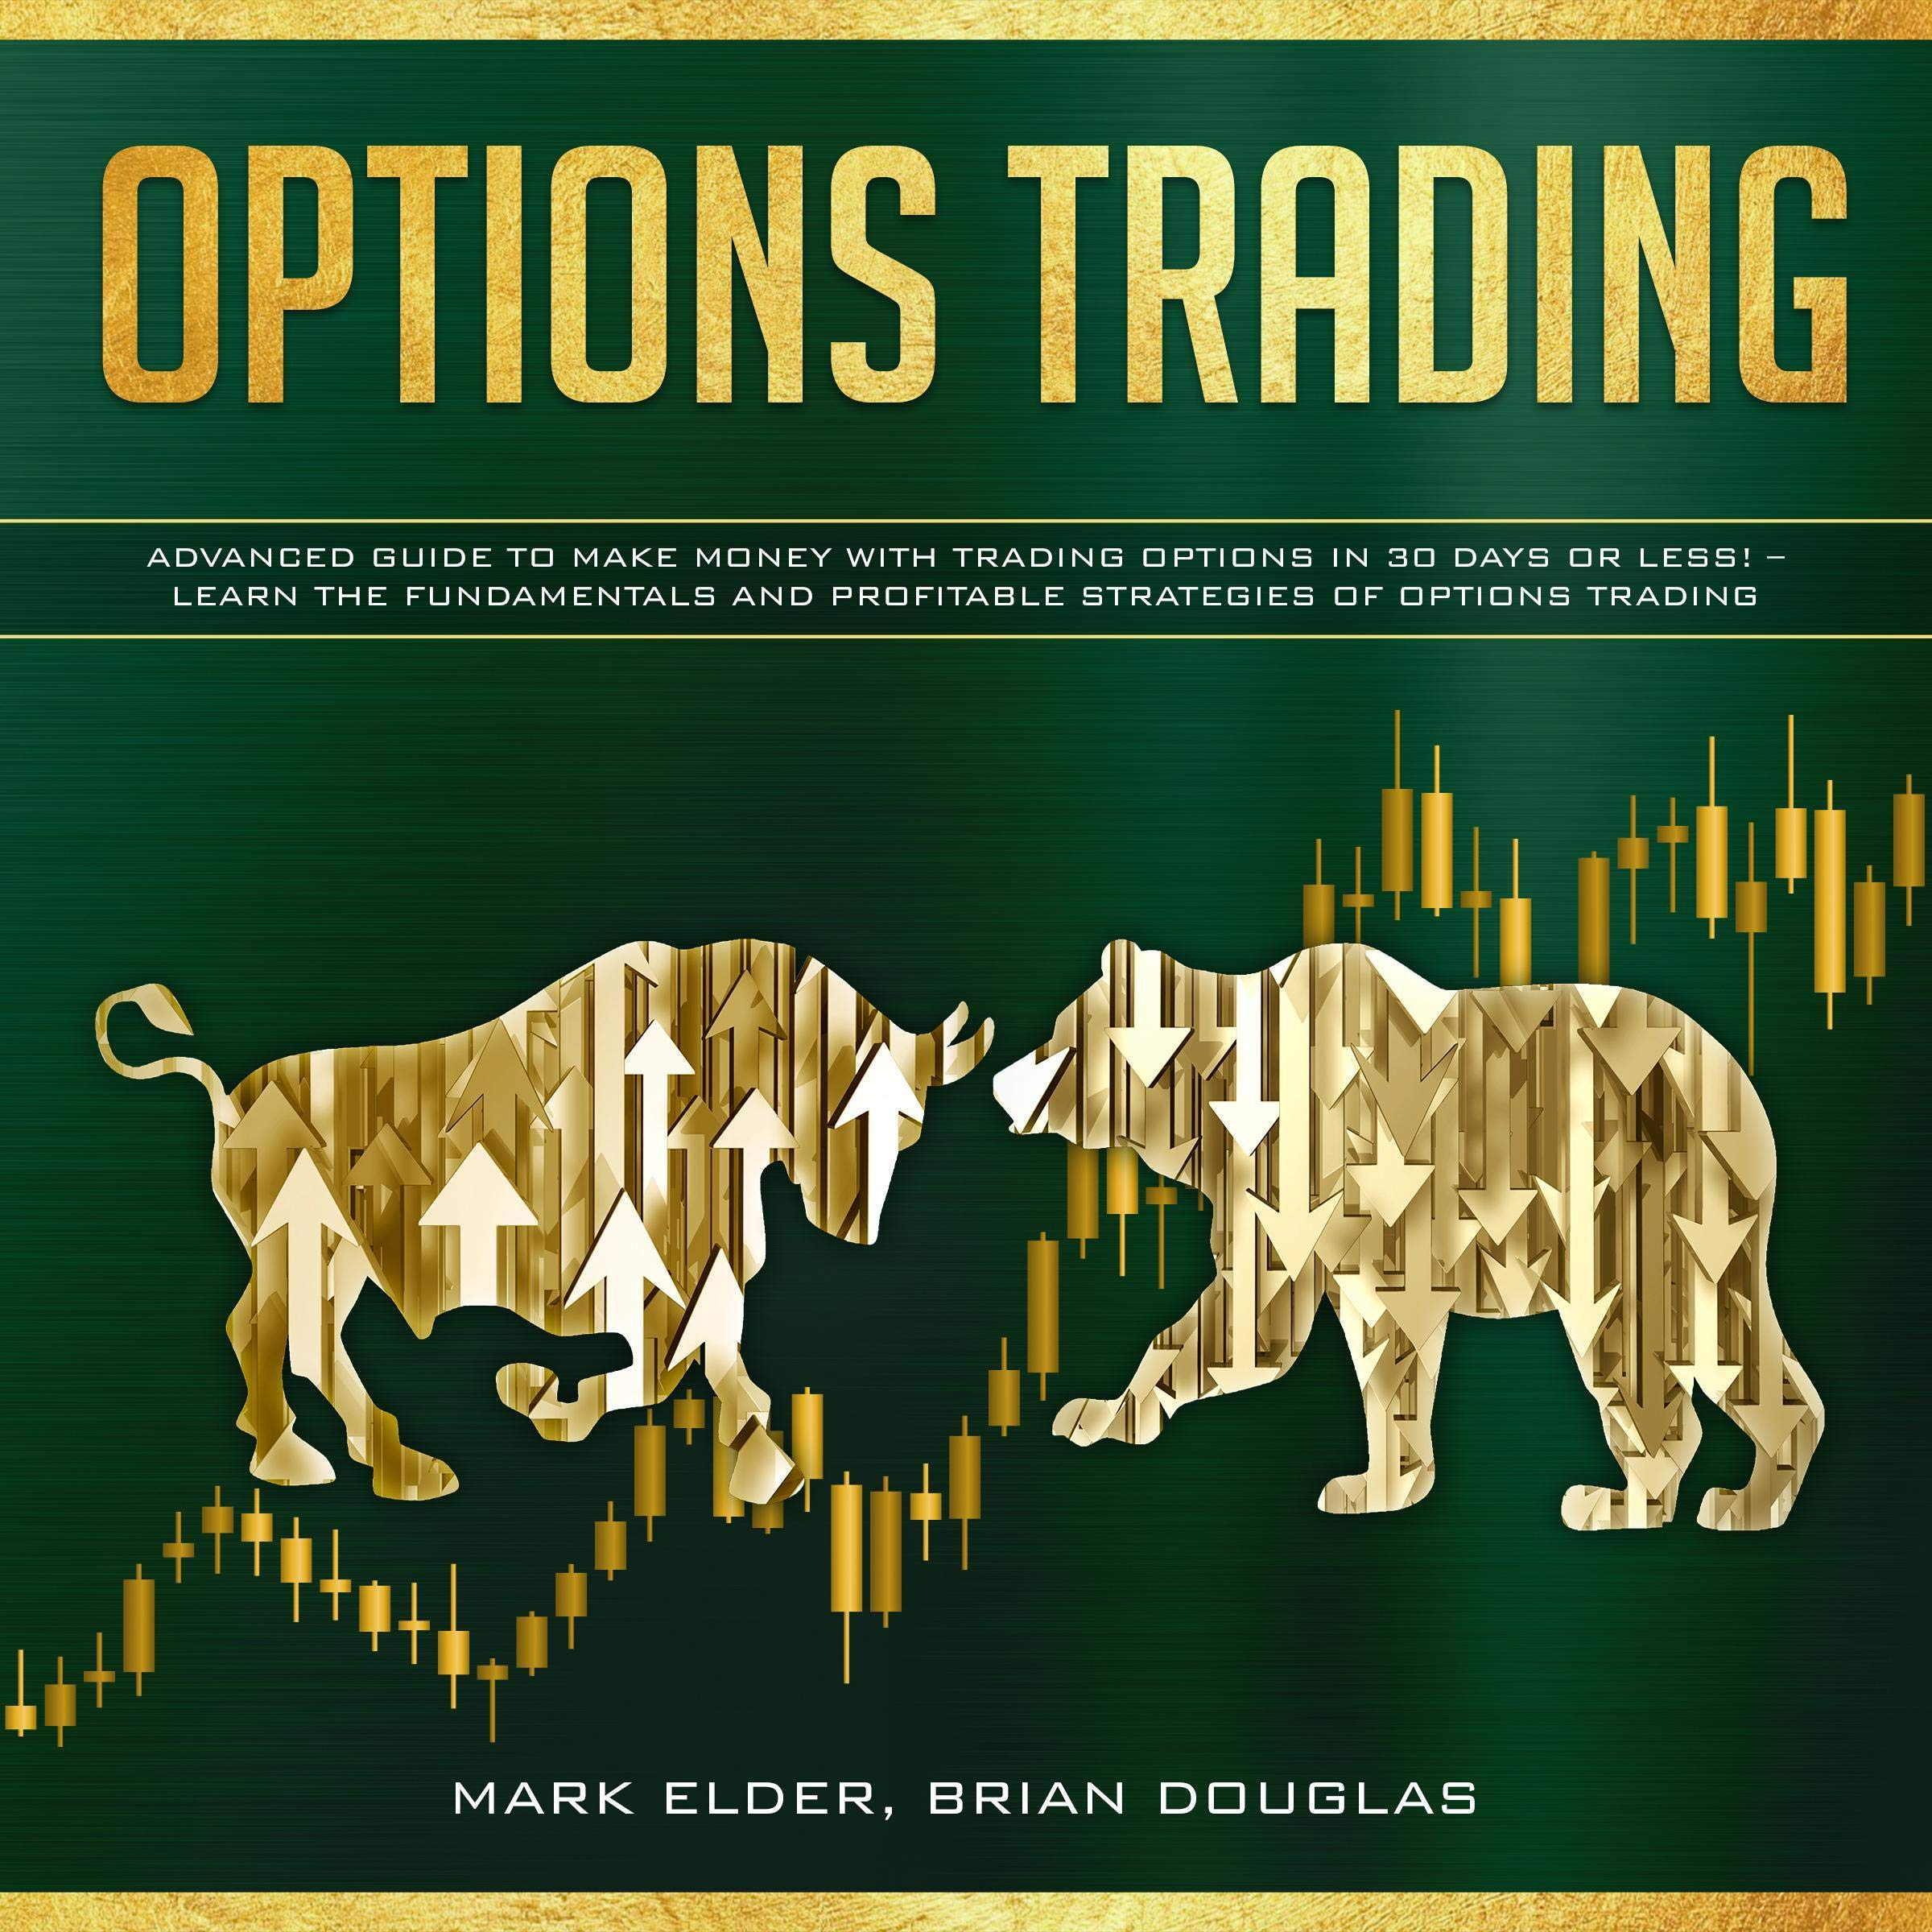 Options Trading  Advanced Guide To Make Money With Trading Options In 30 Days Or Less  – Learn The Fundamentals And Profitable Strategies Of Options Trading